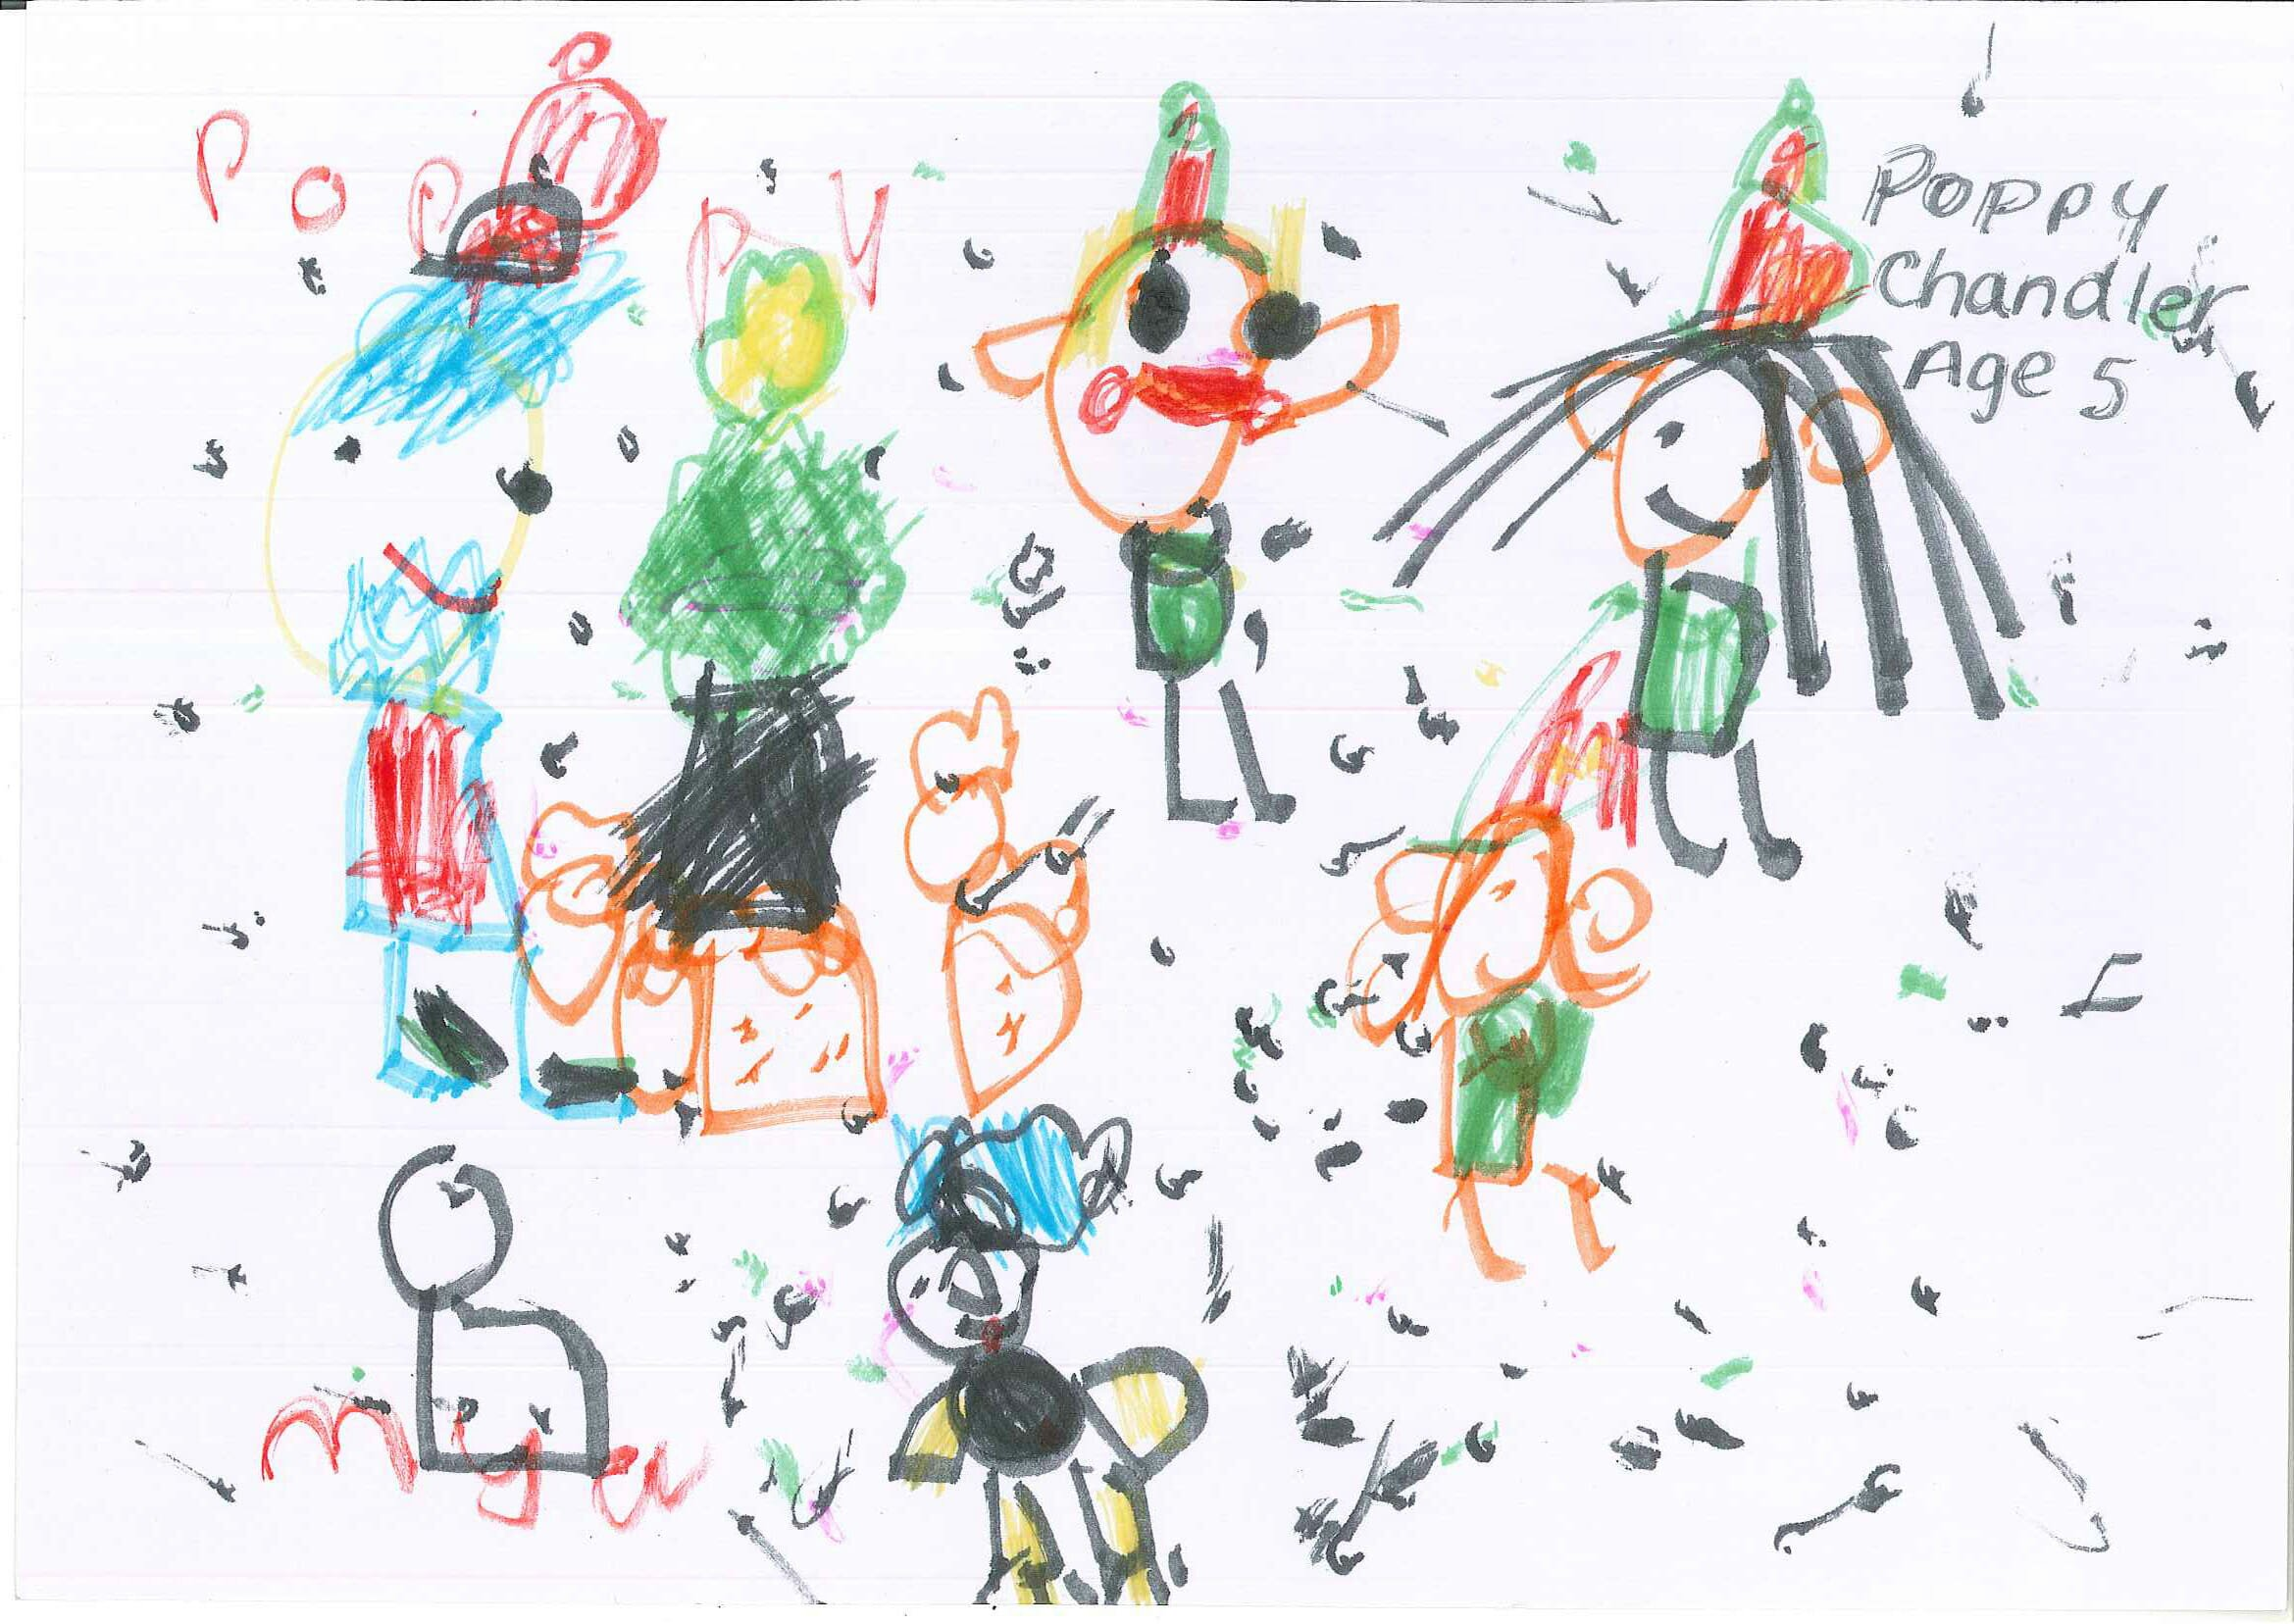 CHECT Christmas card competition - Poppy